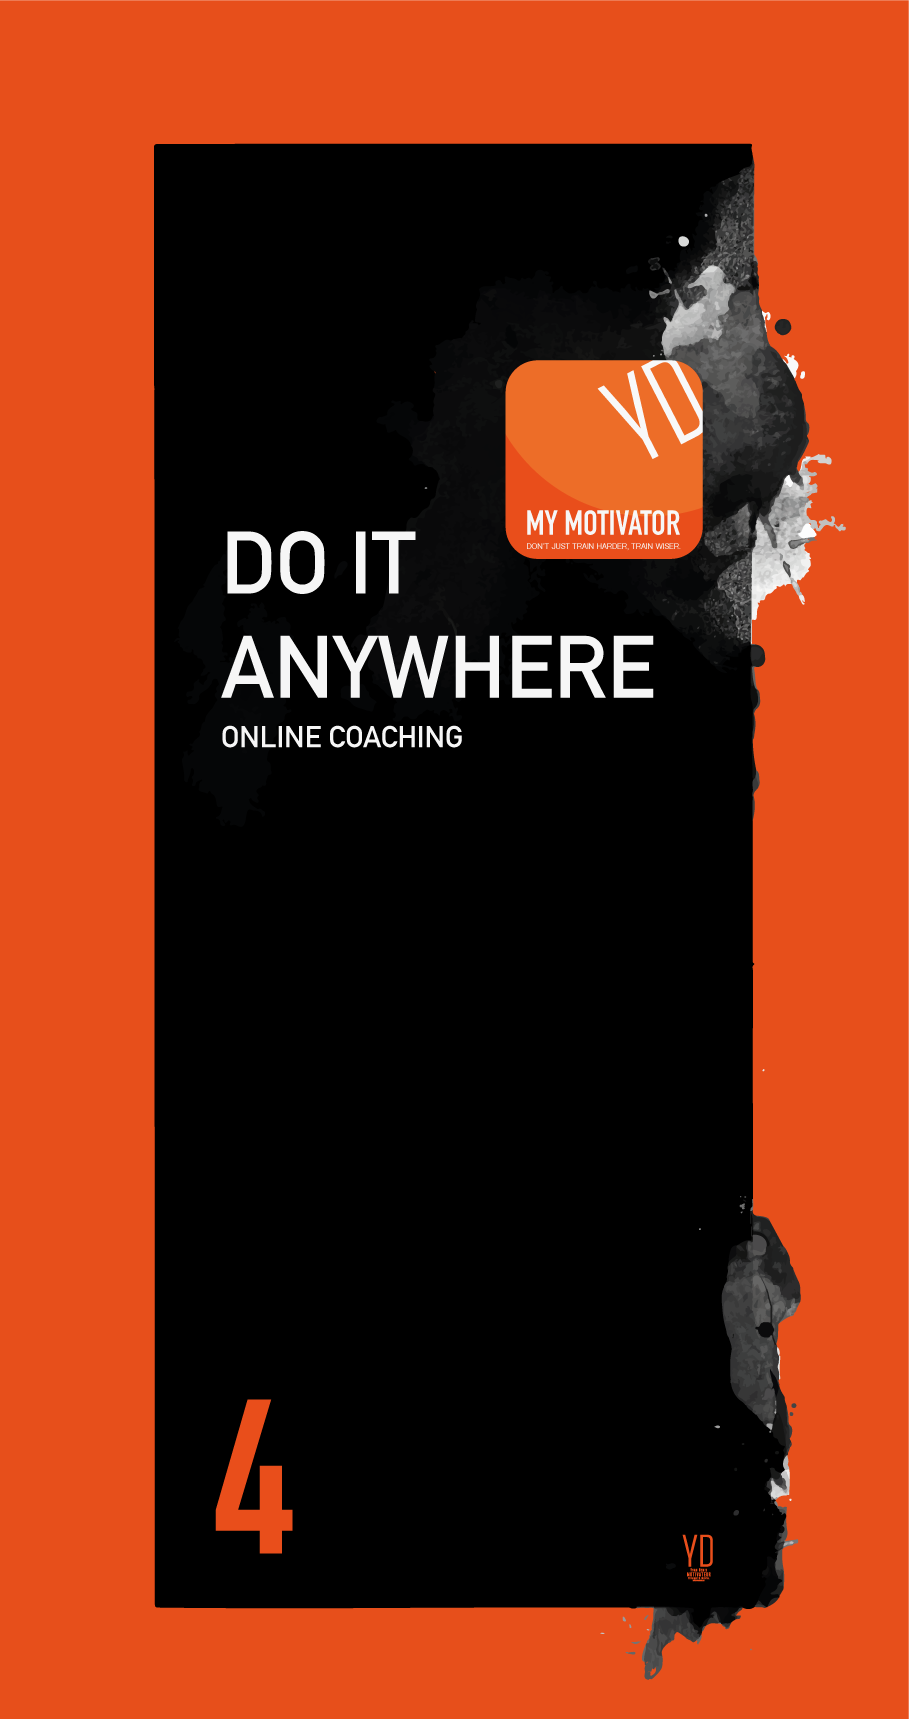 DO_IT_ANYWHERE_PLAN.png